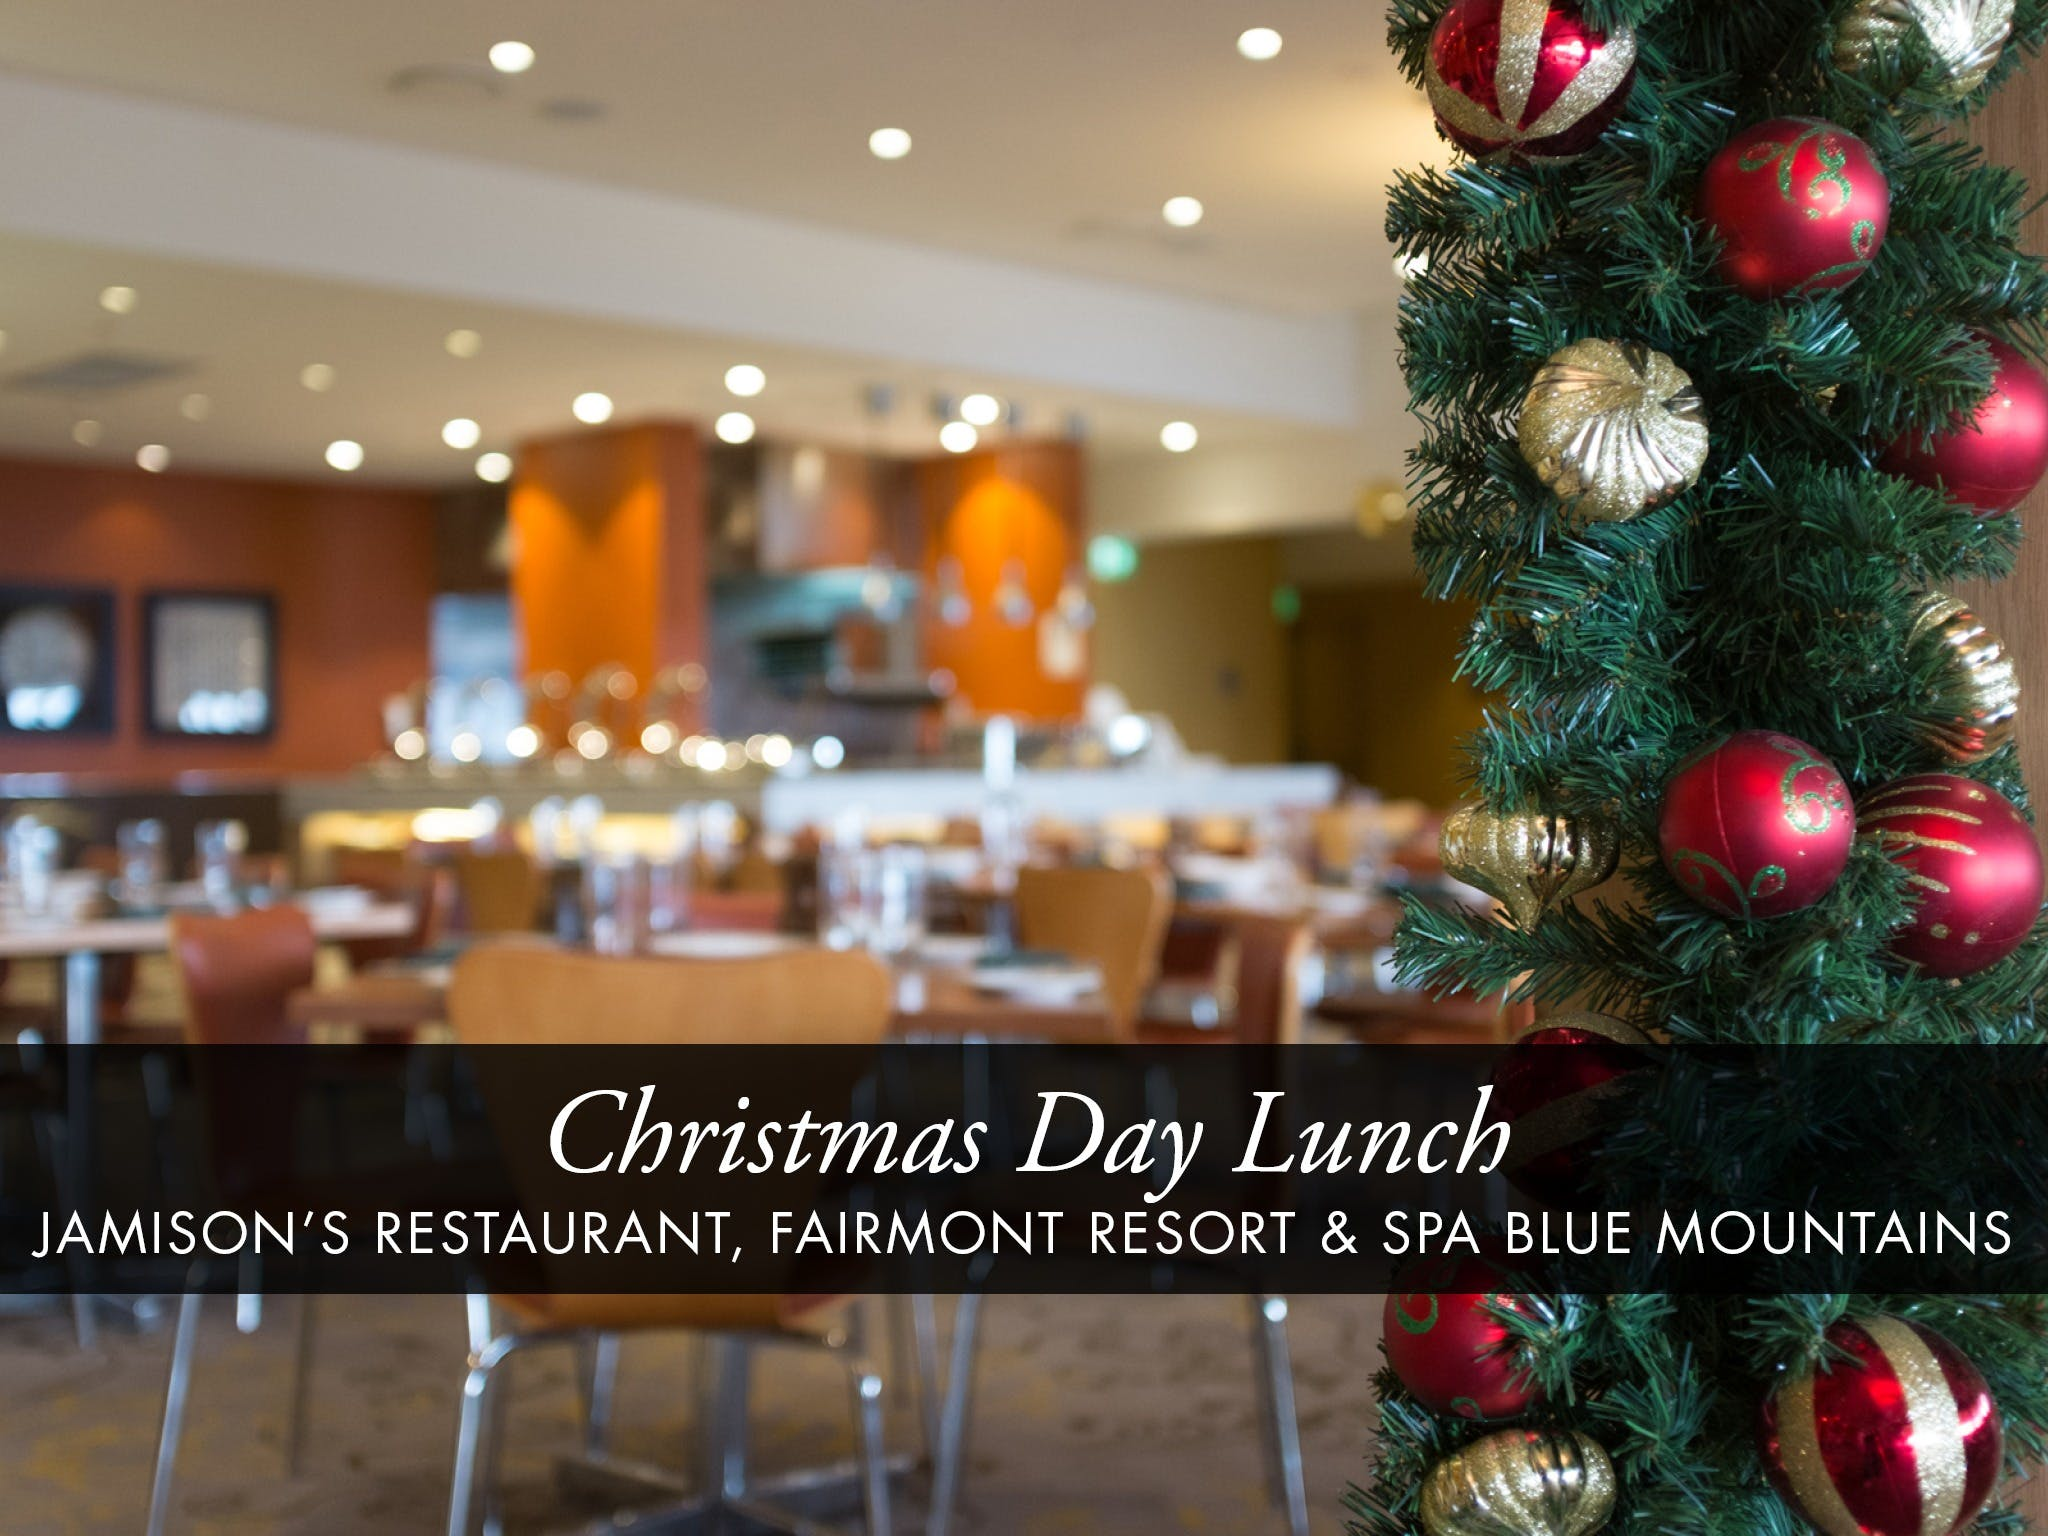 Christmas Day Buffet Lunch at Jamison's Restaurant - Tourism Brisbane